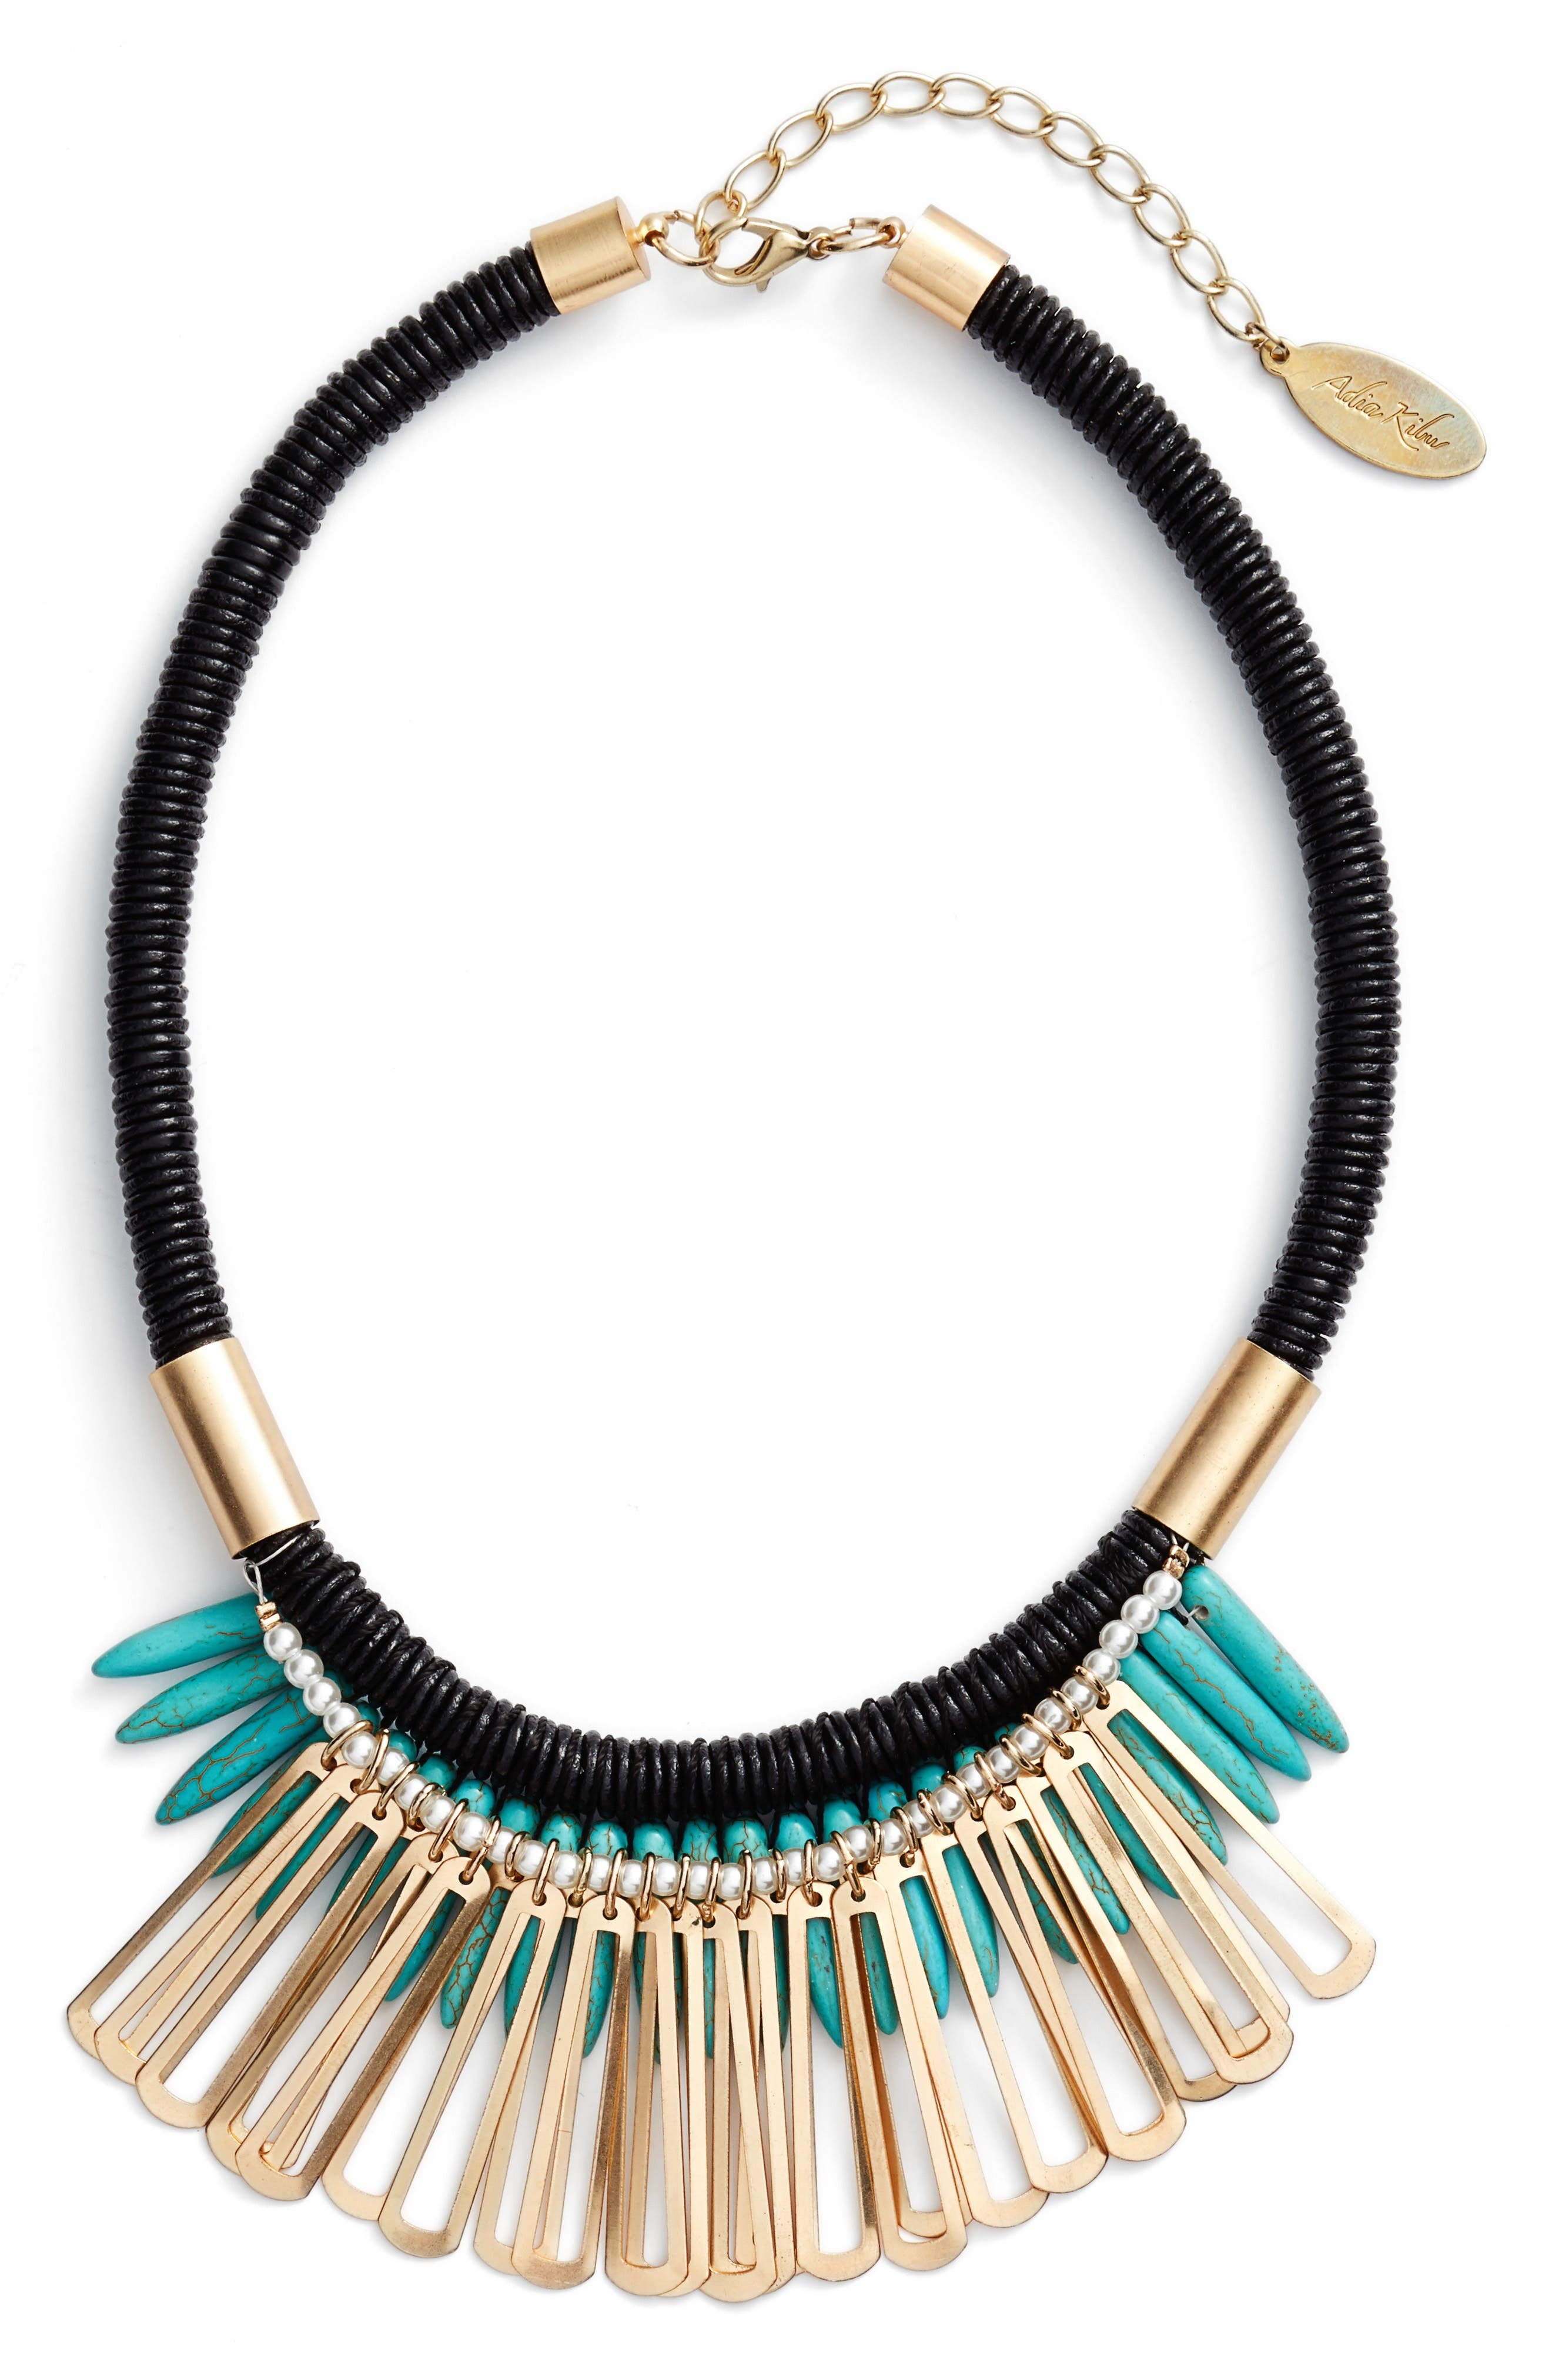 Spike Stone Statement Bib Necklace,                             Main thumbnail 1, color,                             TURQUOISE